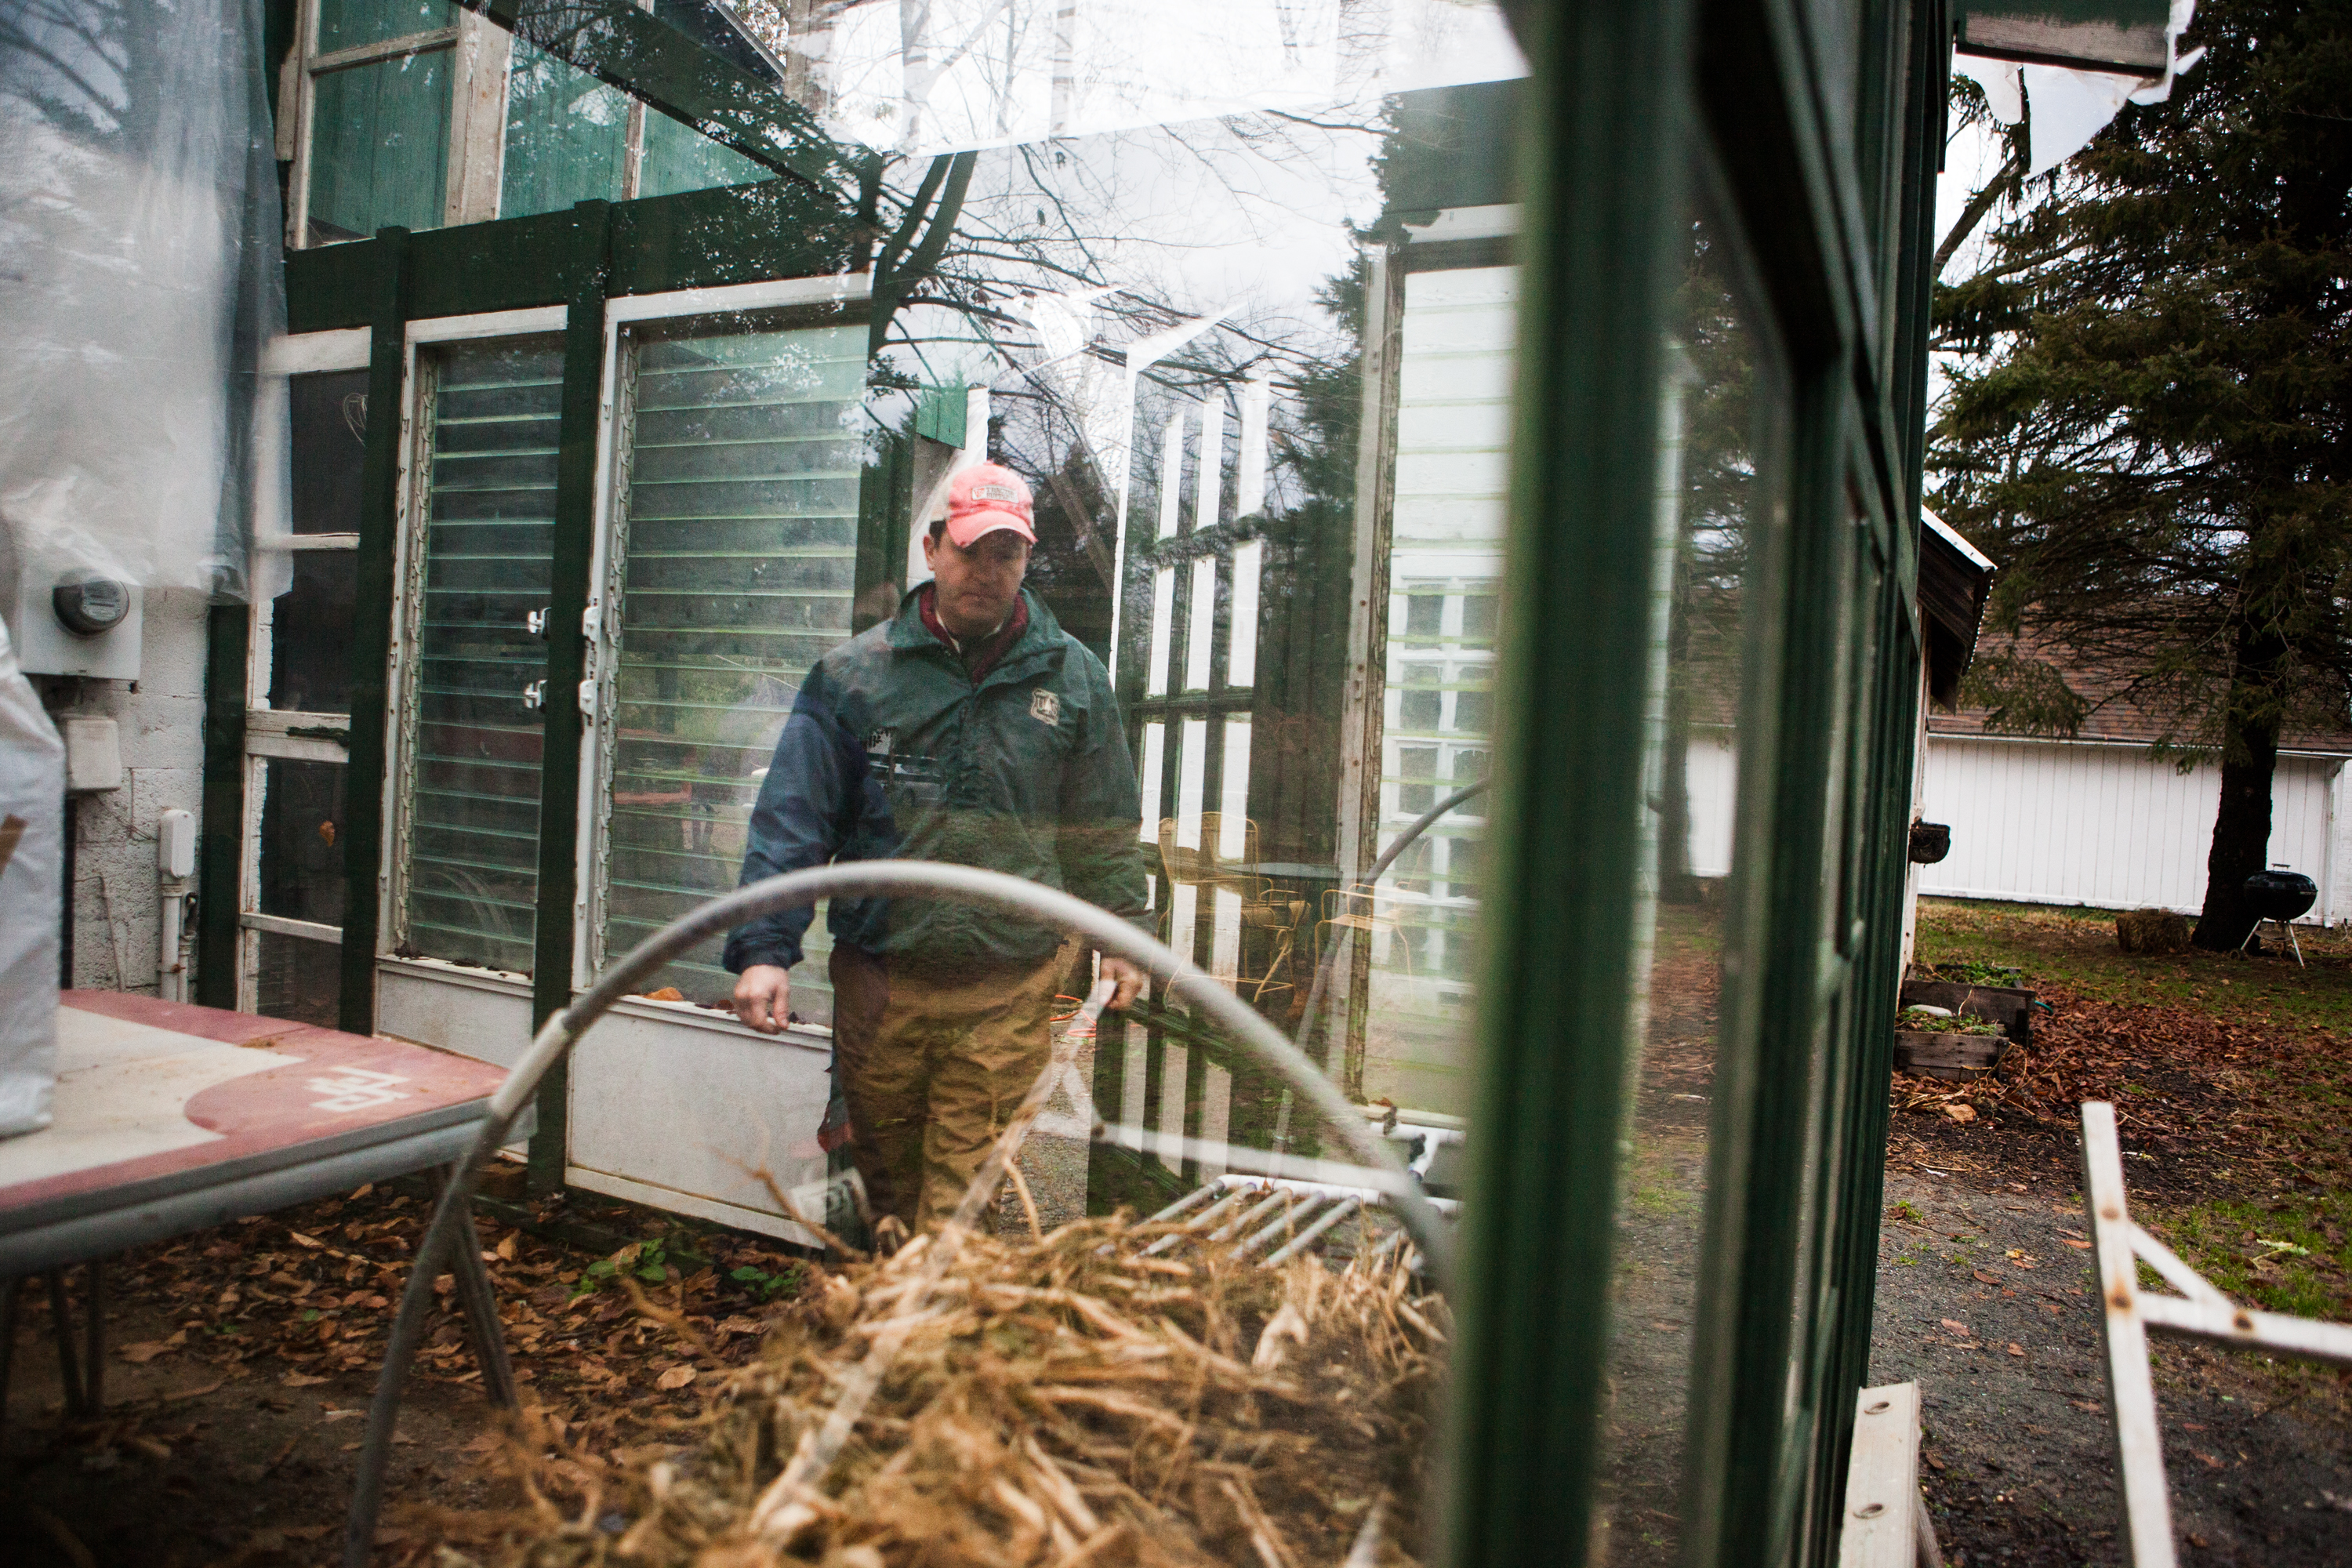 Guerre built this greenhouse out of recycled materials like old windows and doors.